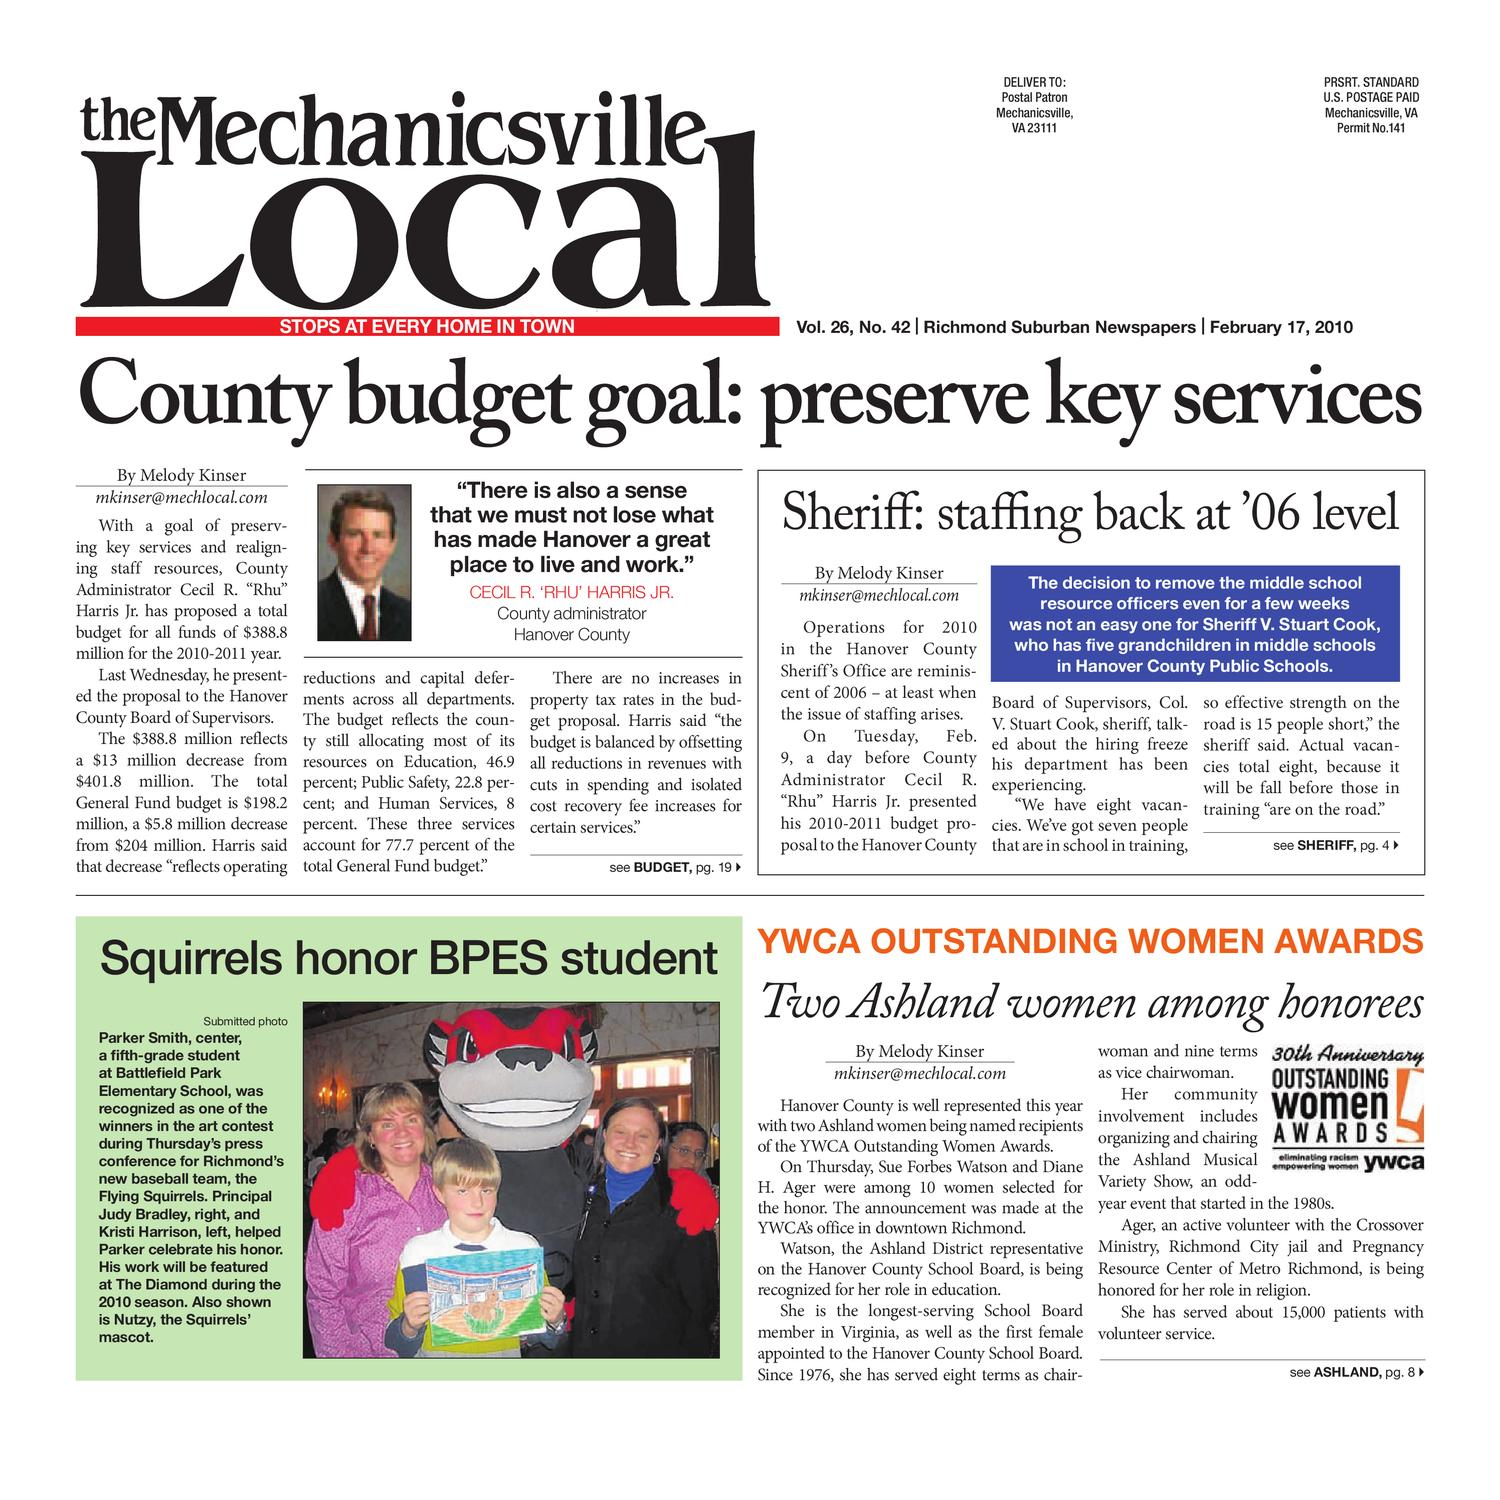 fa29e3be4 02 17 2010 by The Mechanicsville Local - issuu